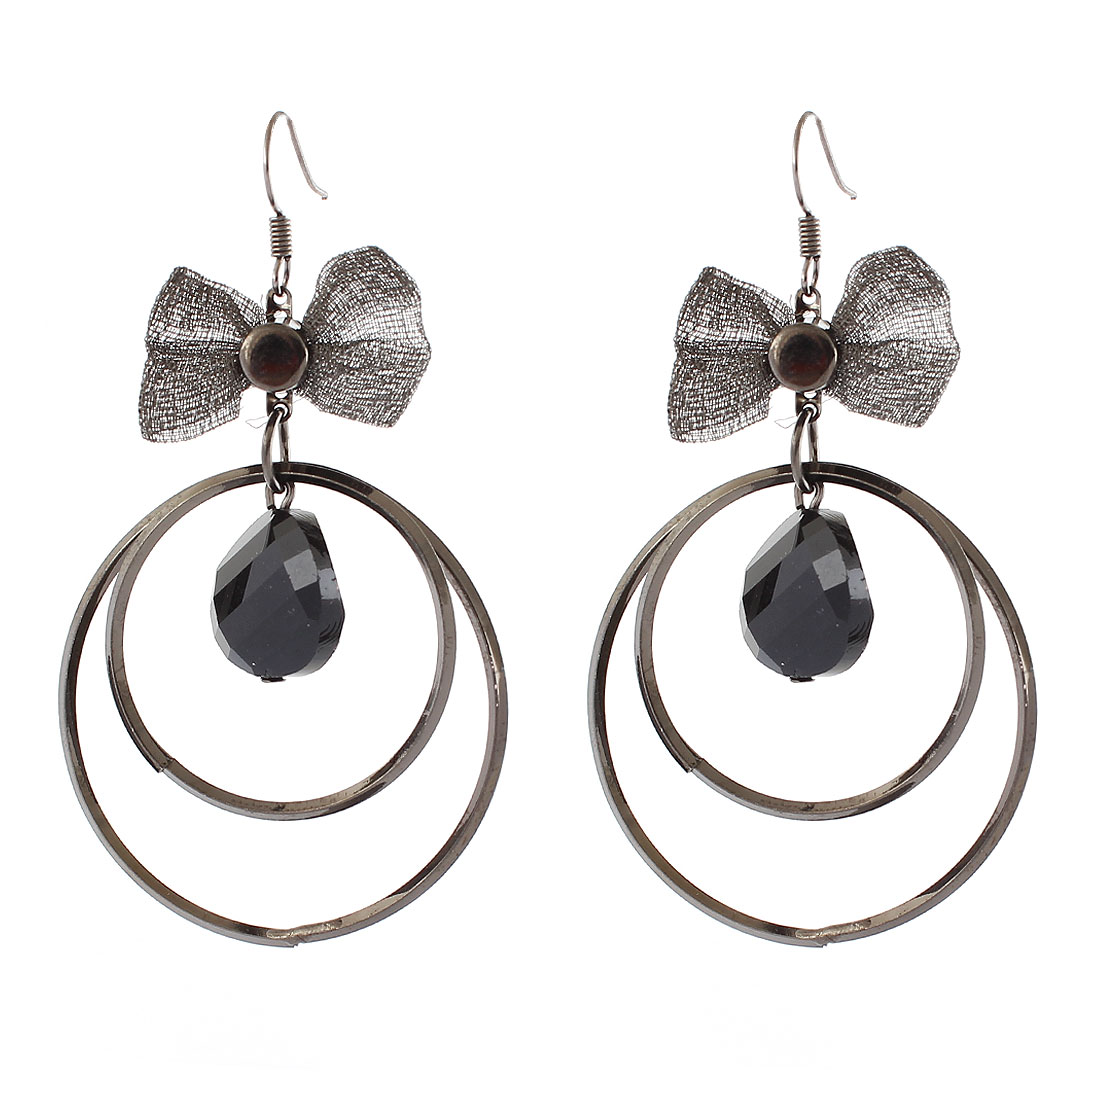 Lady Metal 2 Dangling Circles Bowknot Ornament Hook Earrings Black Pair